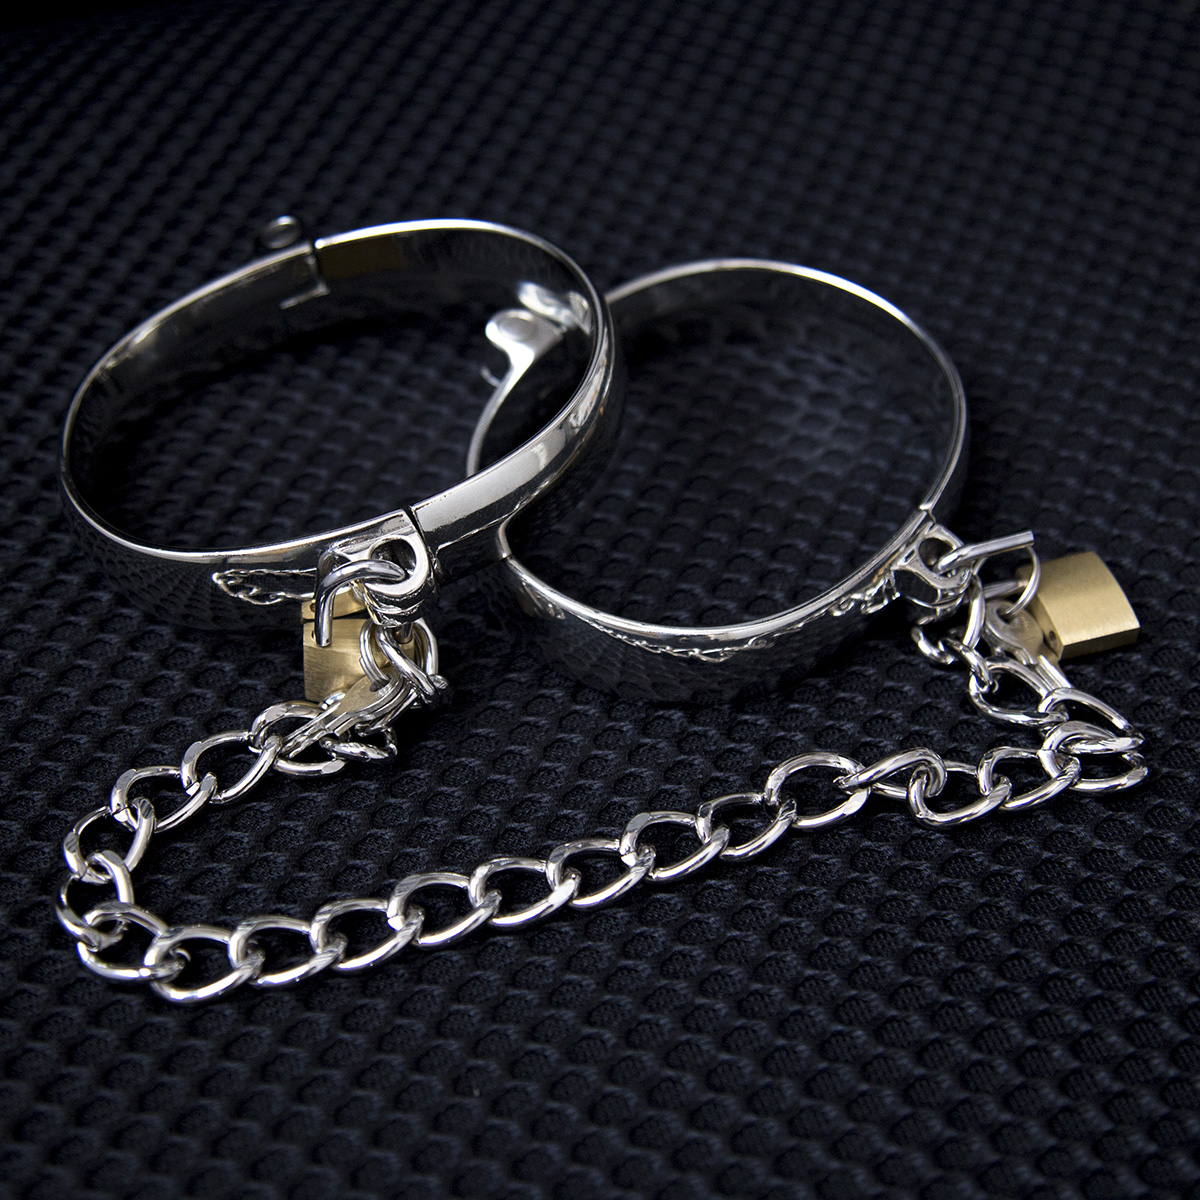 Details about Lockable Stainless Steel Handcuff Shackle Wrist Ankle Cuffs  Chain Sex Restraints